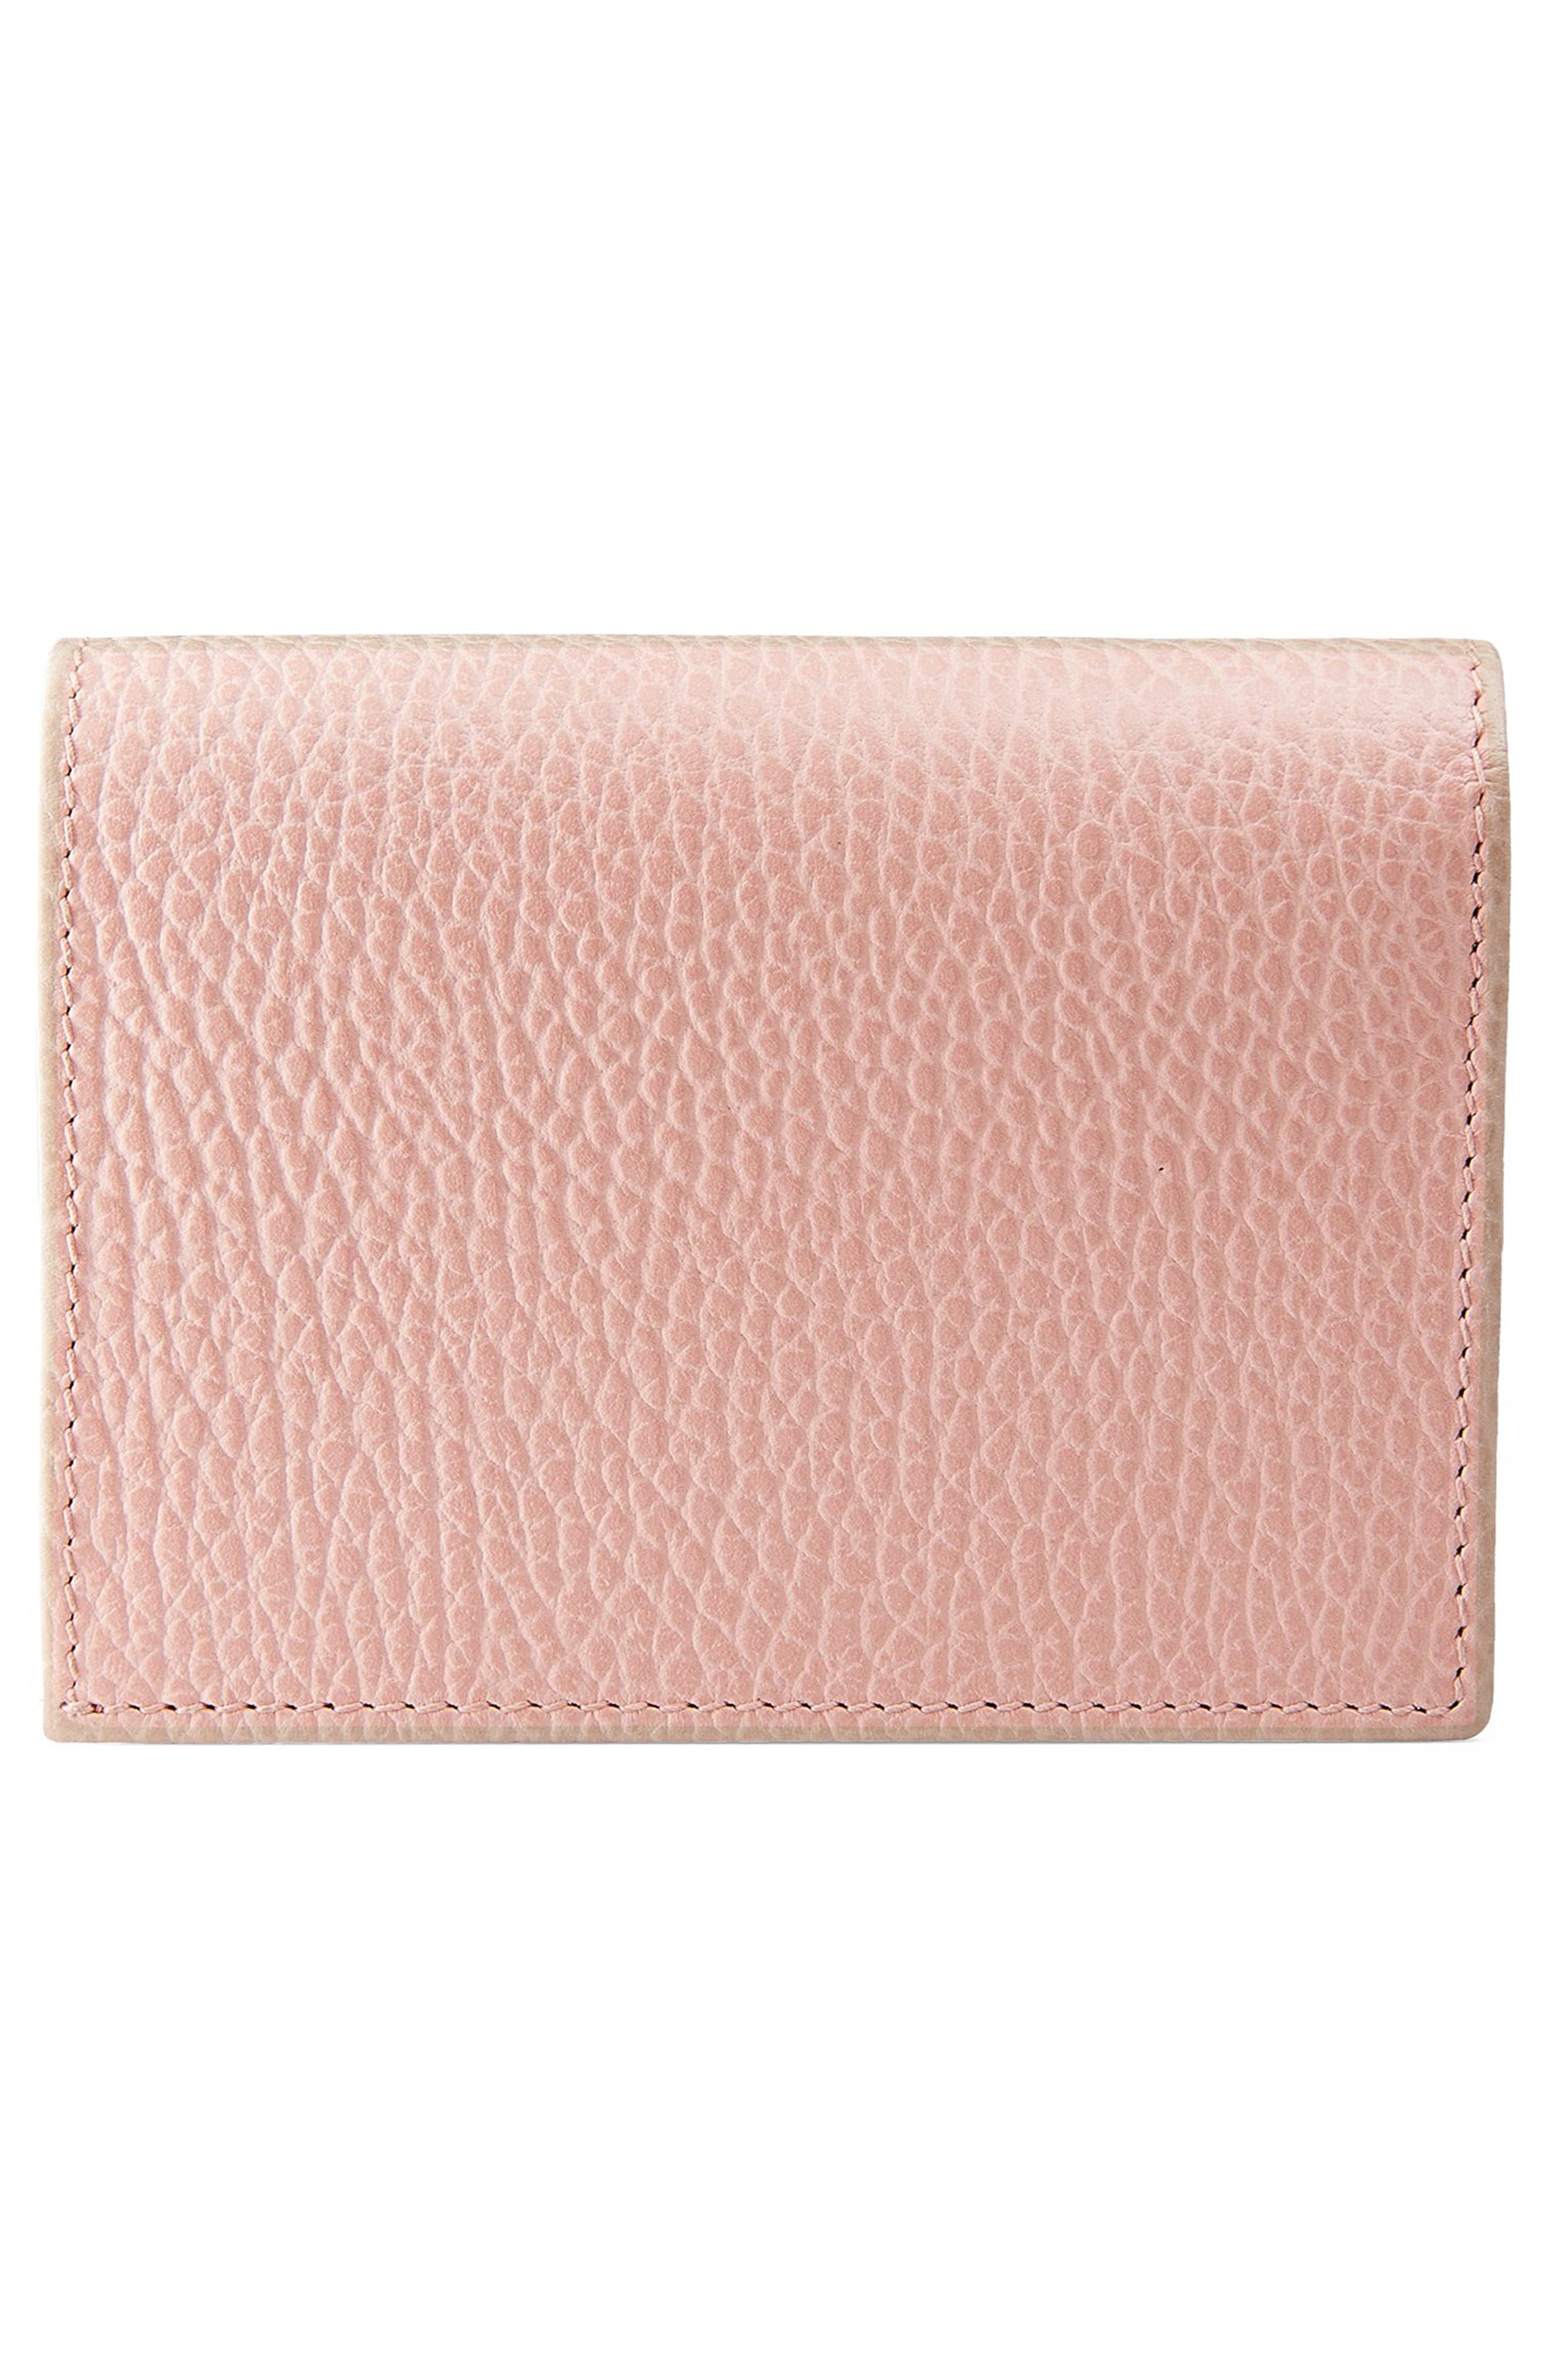 Farfalla Leather Card Case,                             Alternate thumbnail 3, color,                             PERFECT PINK/ CRYSTAL